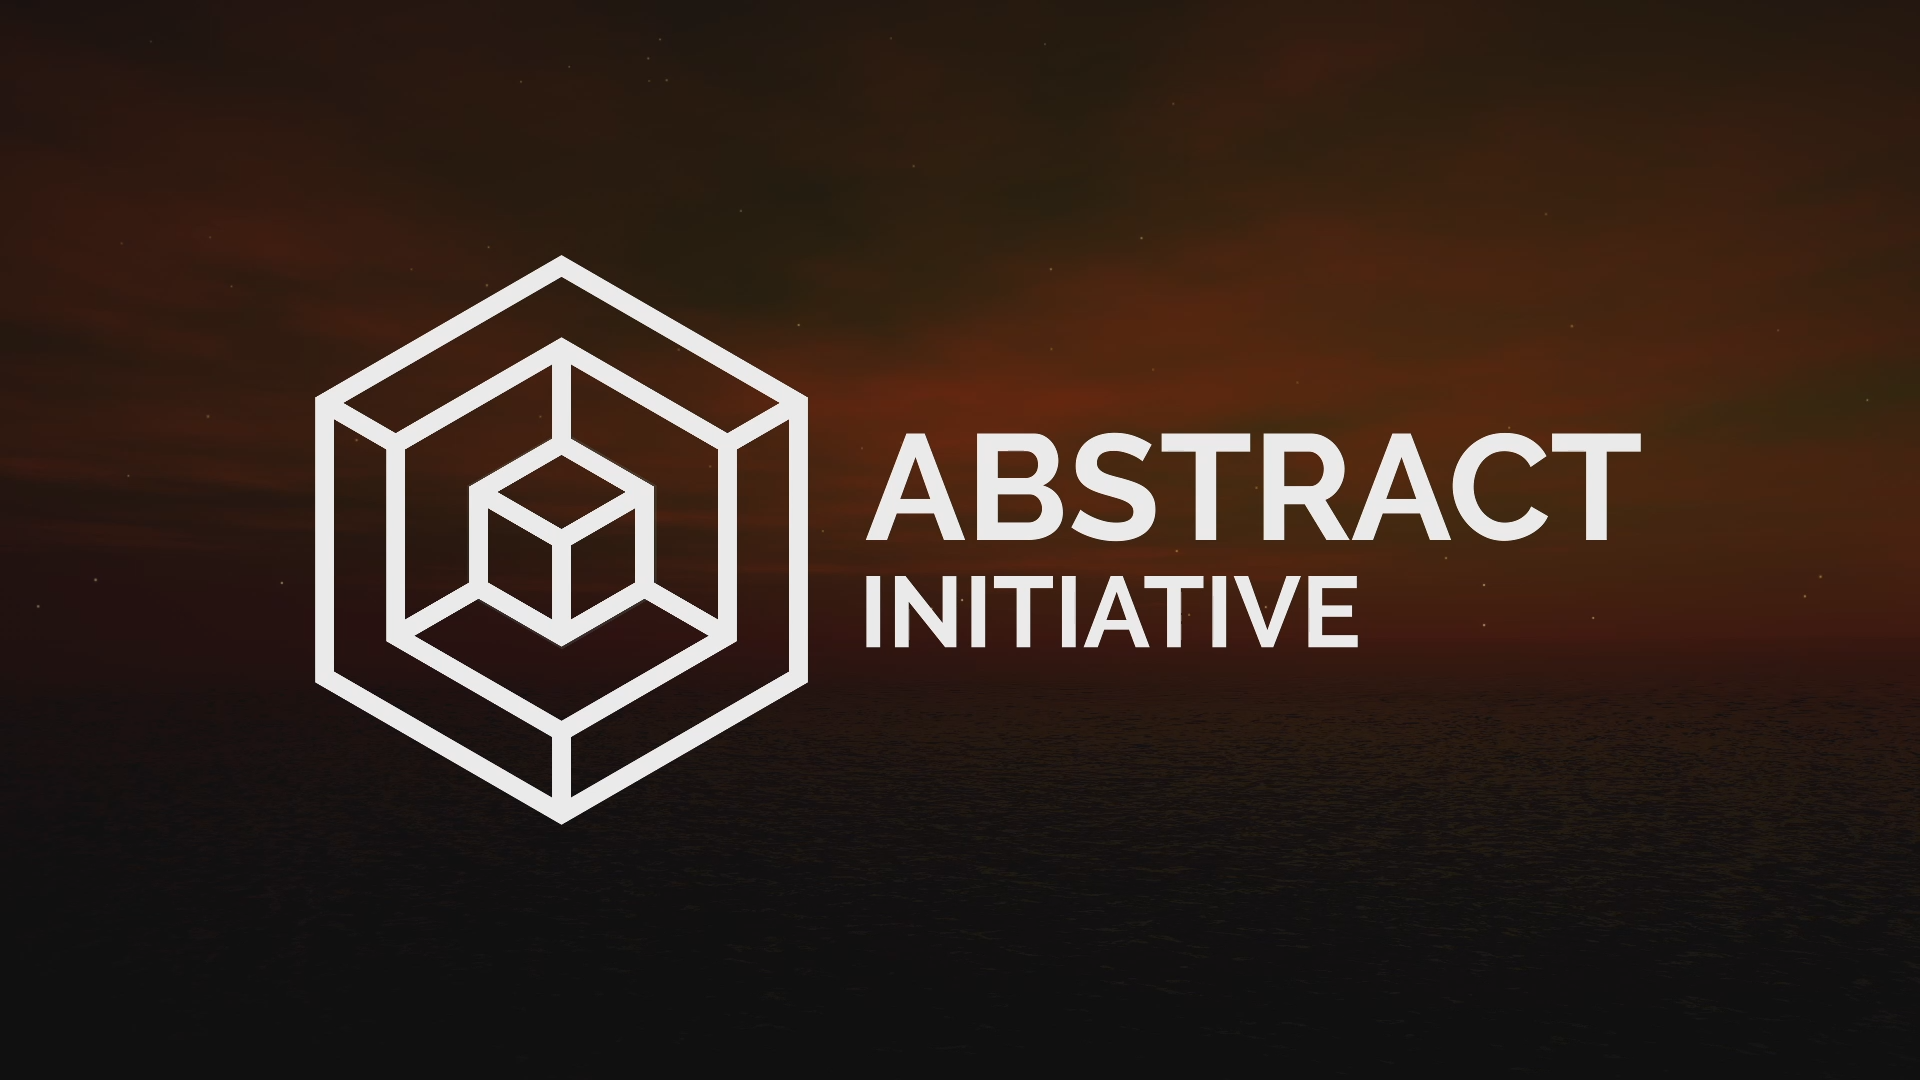 Abstract Initiative Title